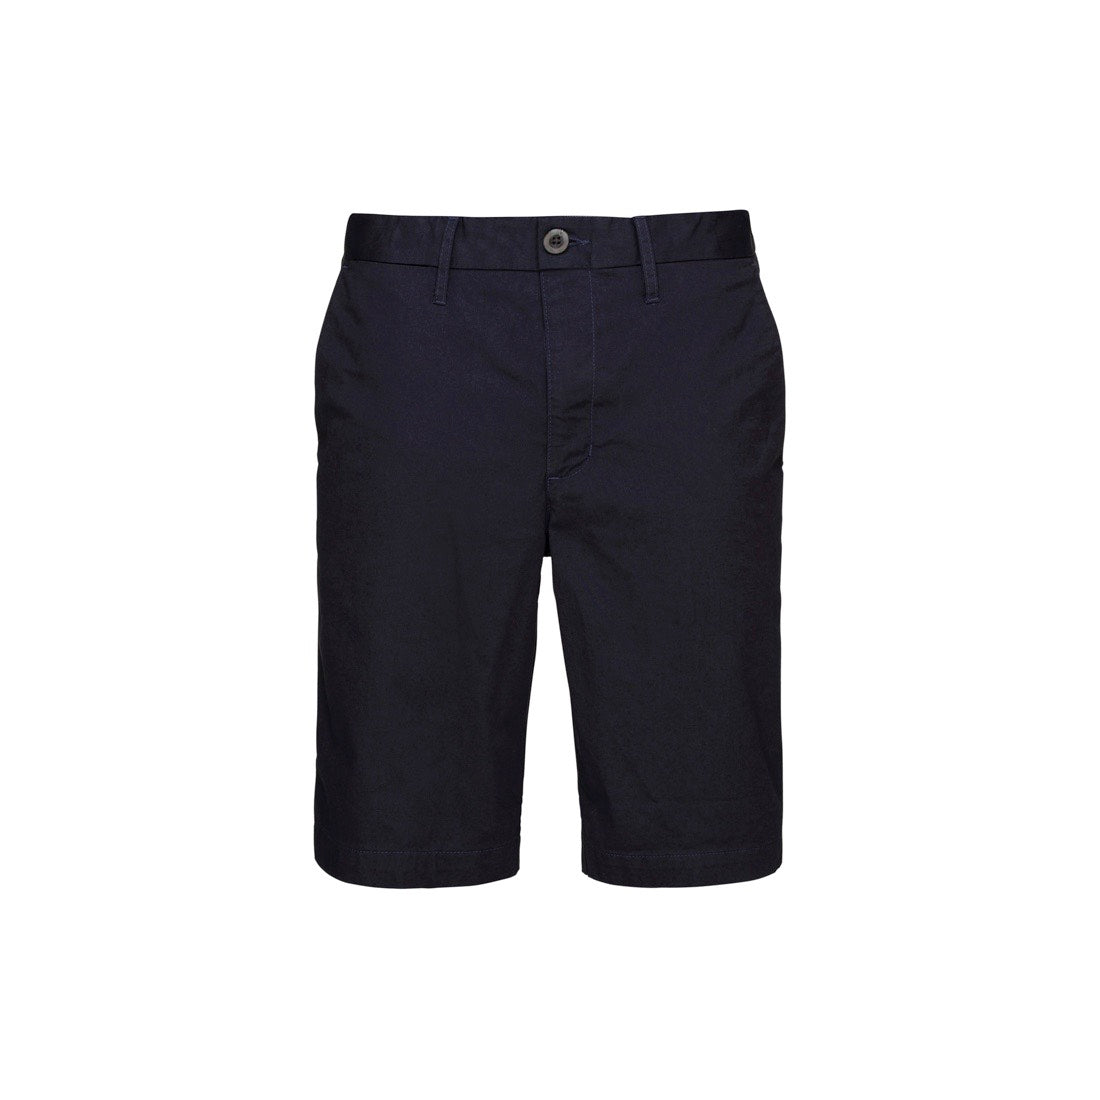 R.M Williams Scarborough Shorts Navy